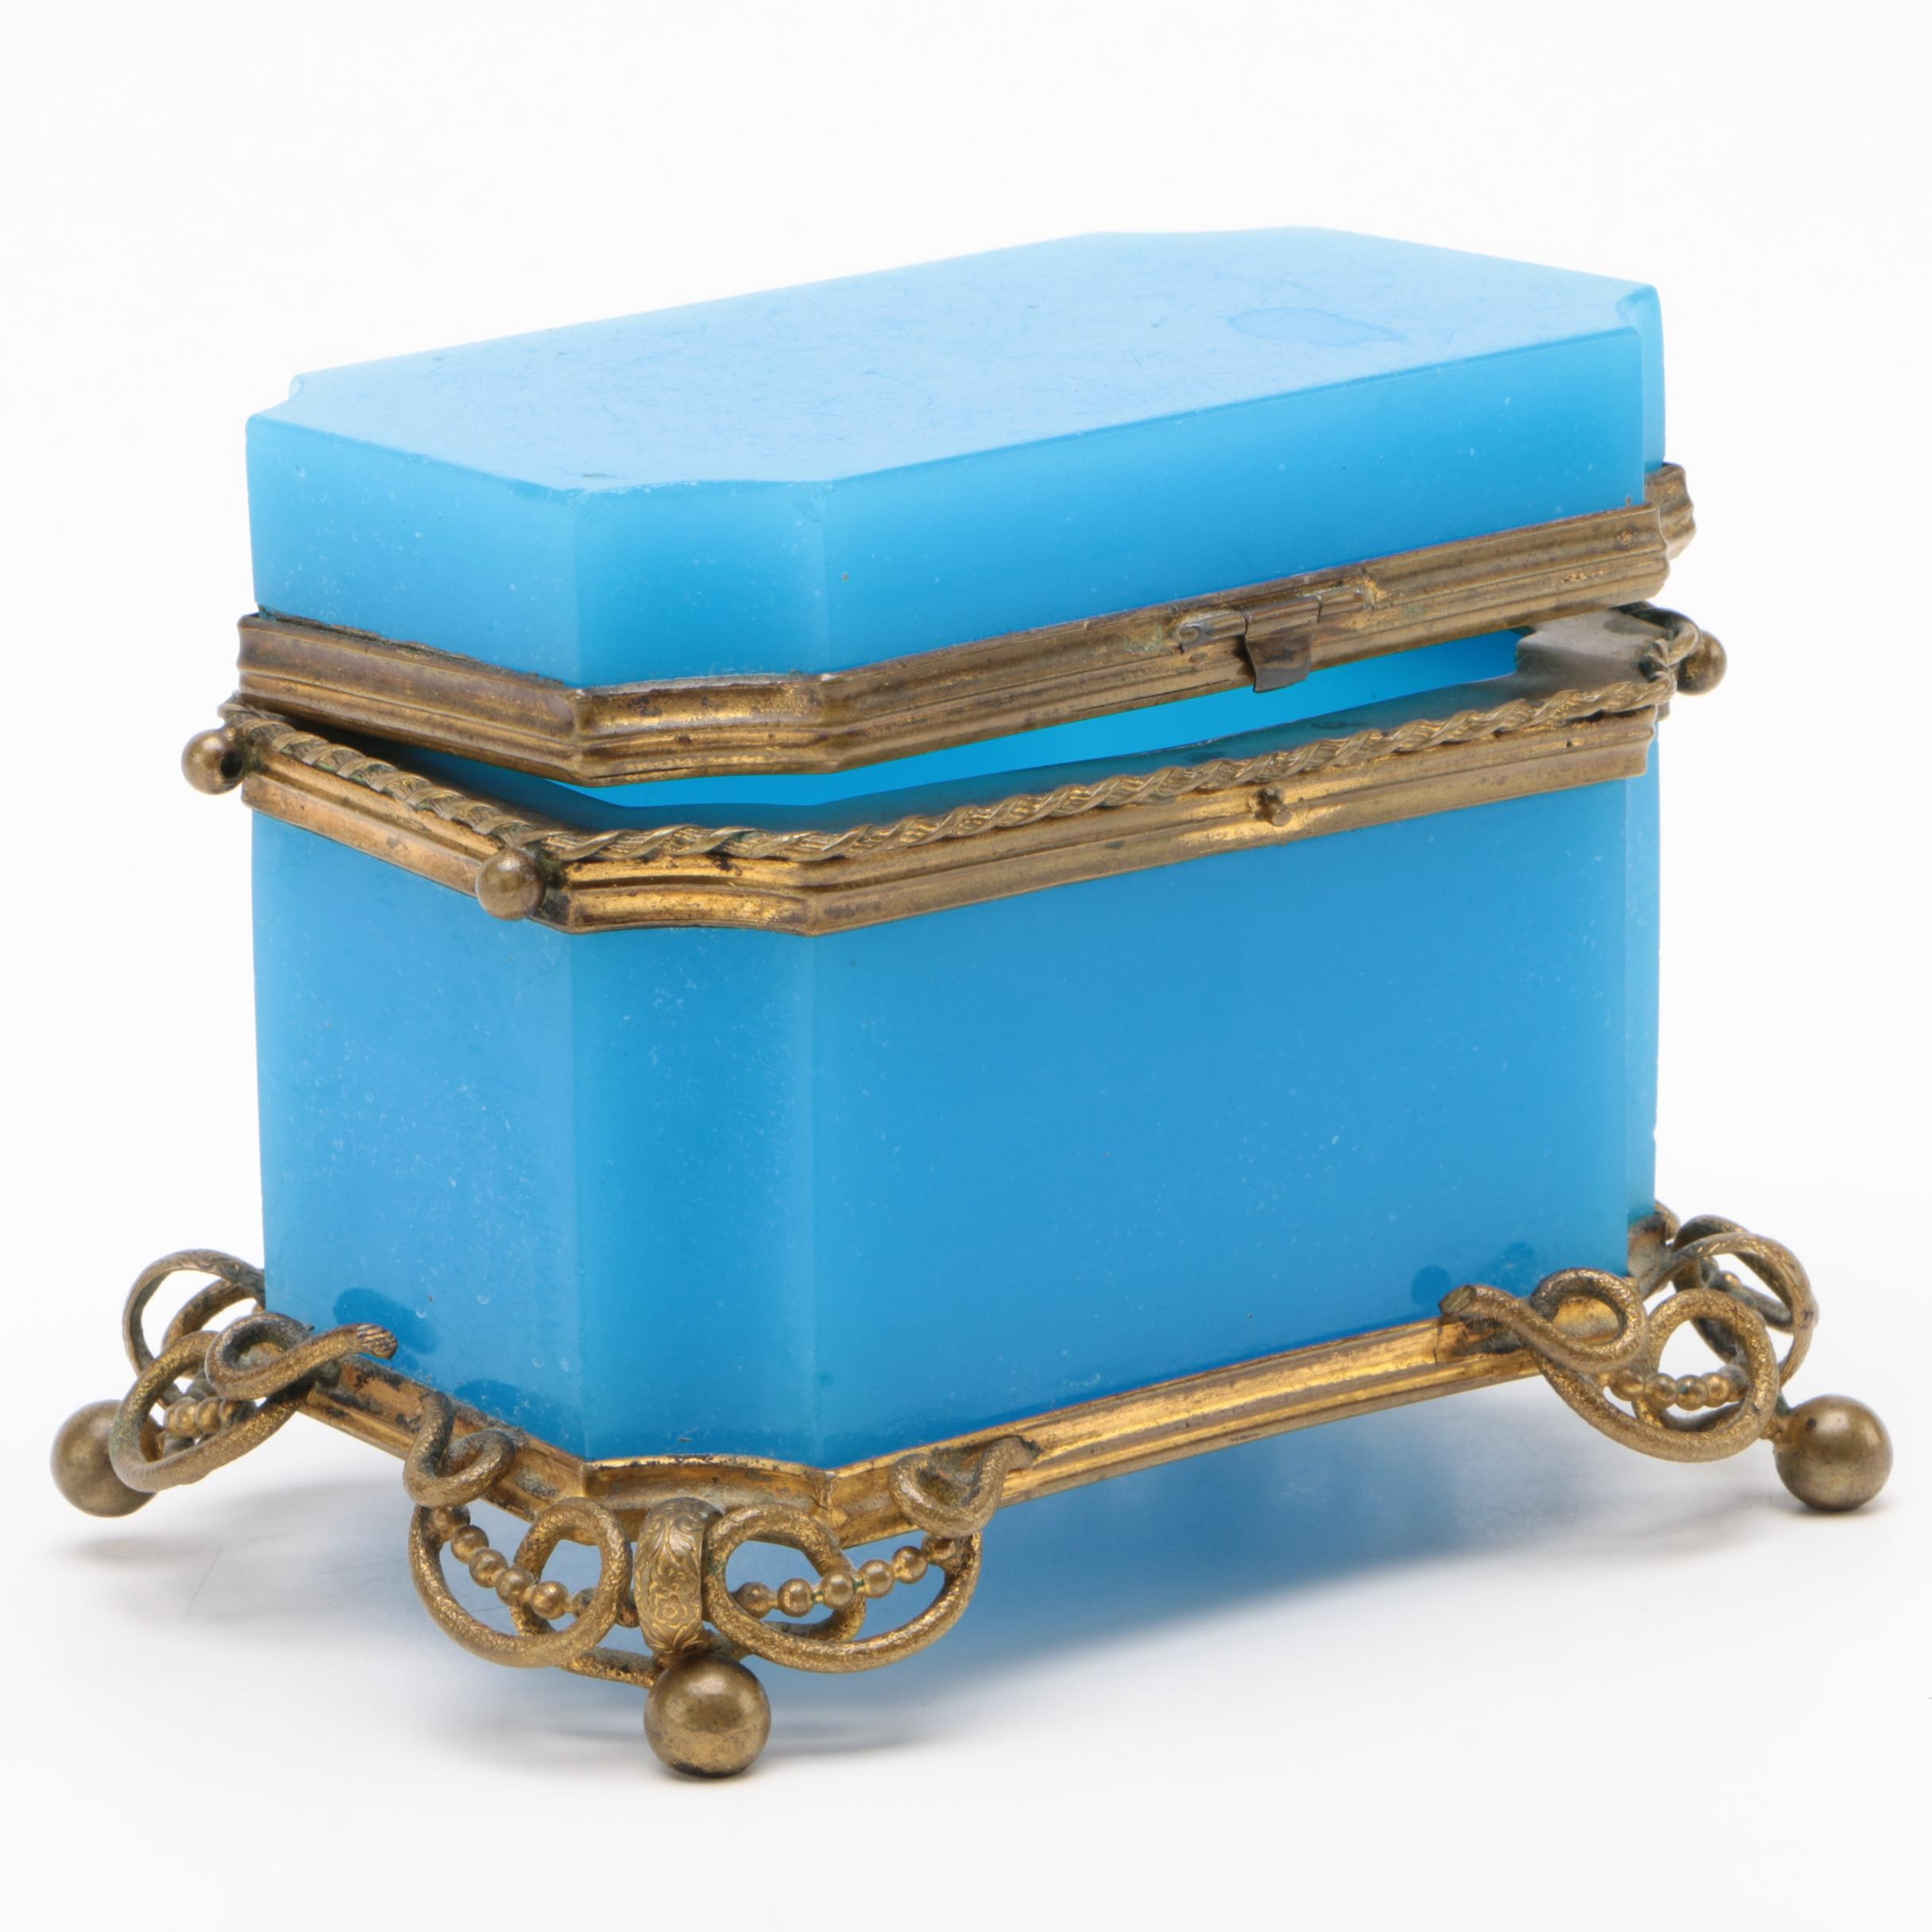 French Blue Opaline Glass Casket, 19th Century